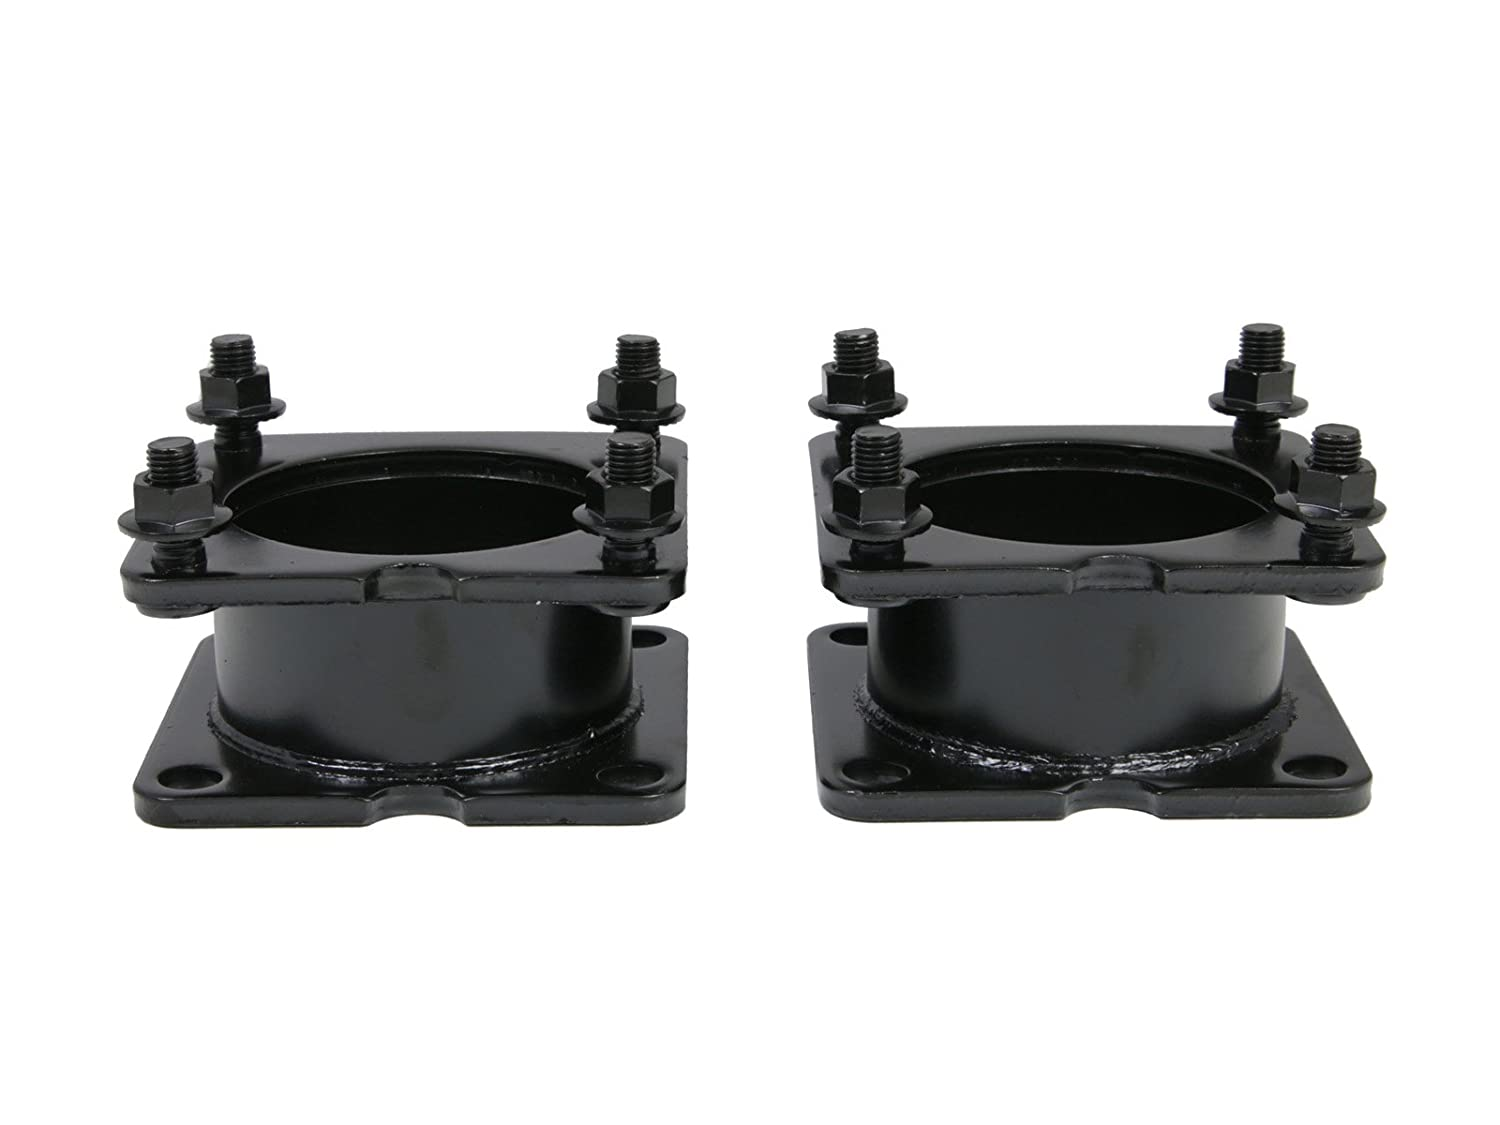 Front Steel Leveling Kit | 2' inch Lift | for 2001-2012 Ford Escape, 2000-2012 Mazda Tribute, 2004-2012 Mercury Mariner | Black Steel Spacer Precision European Motorwerks